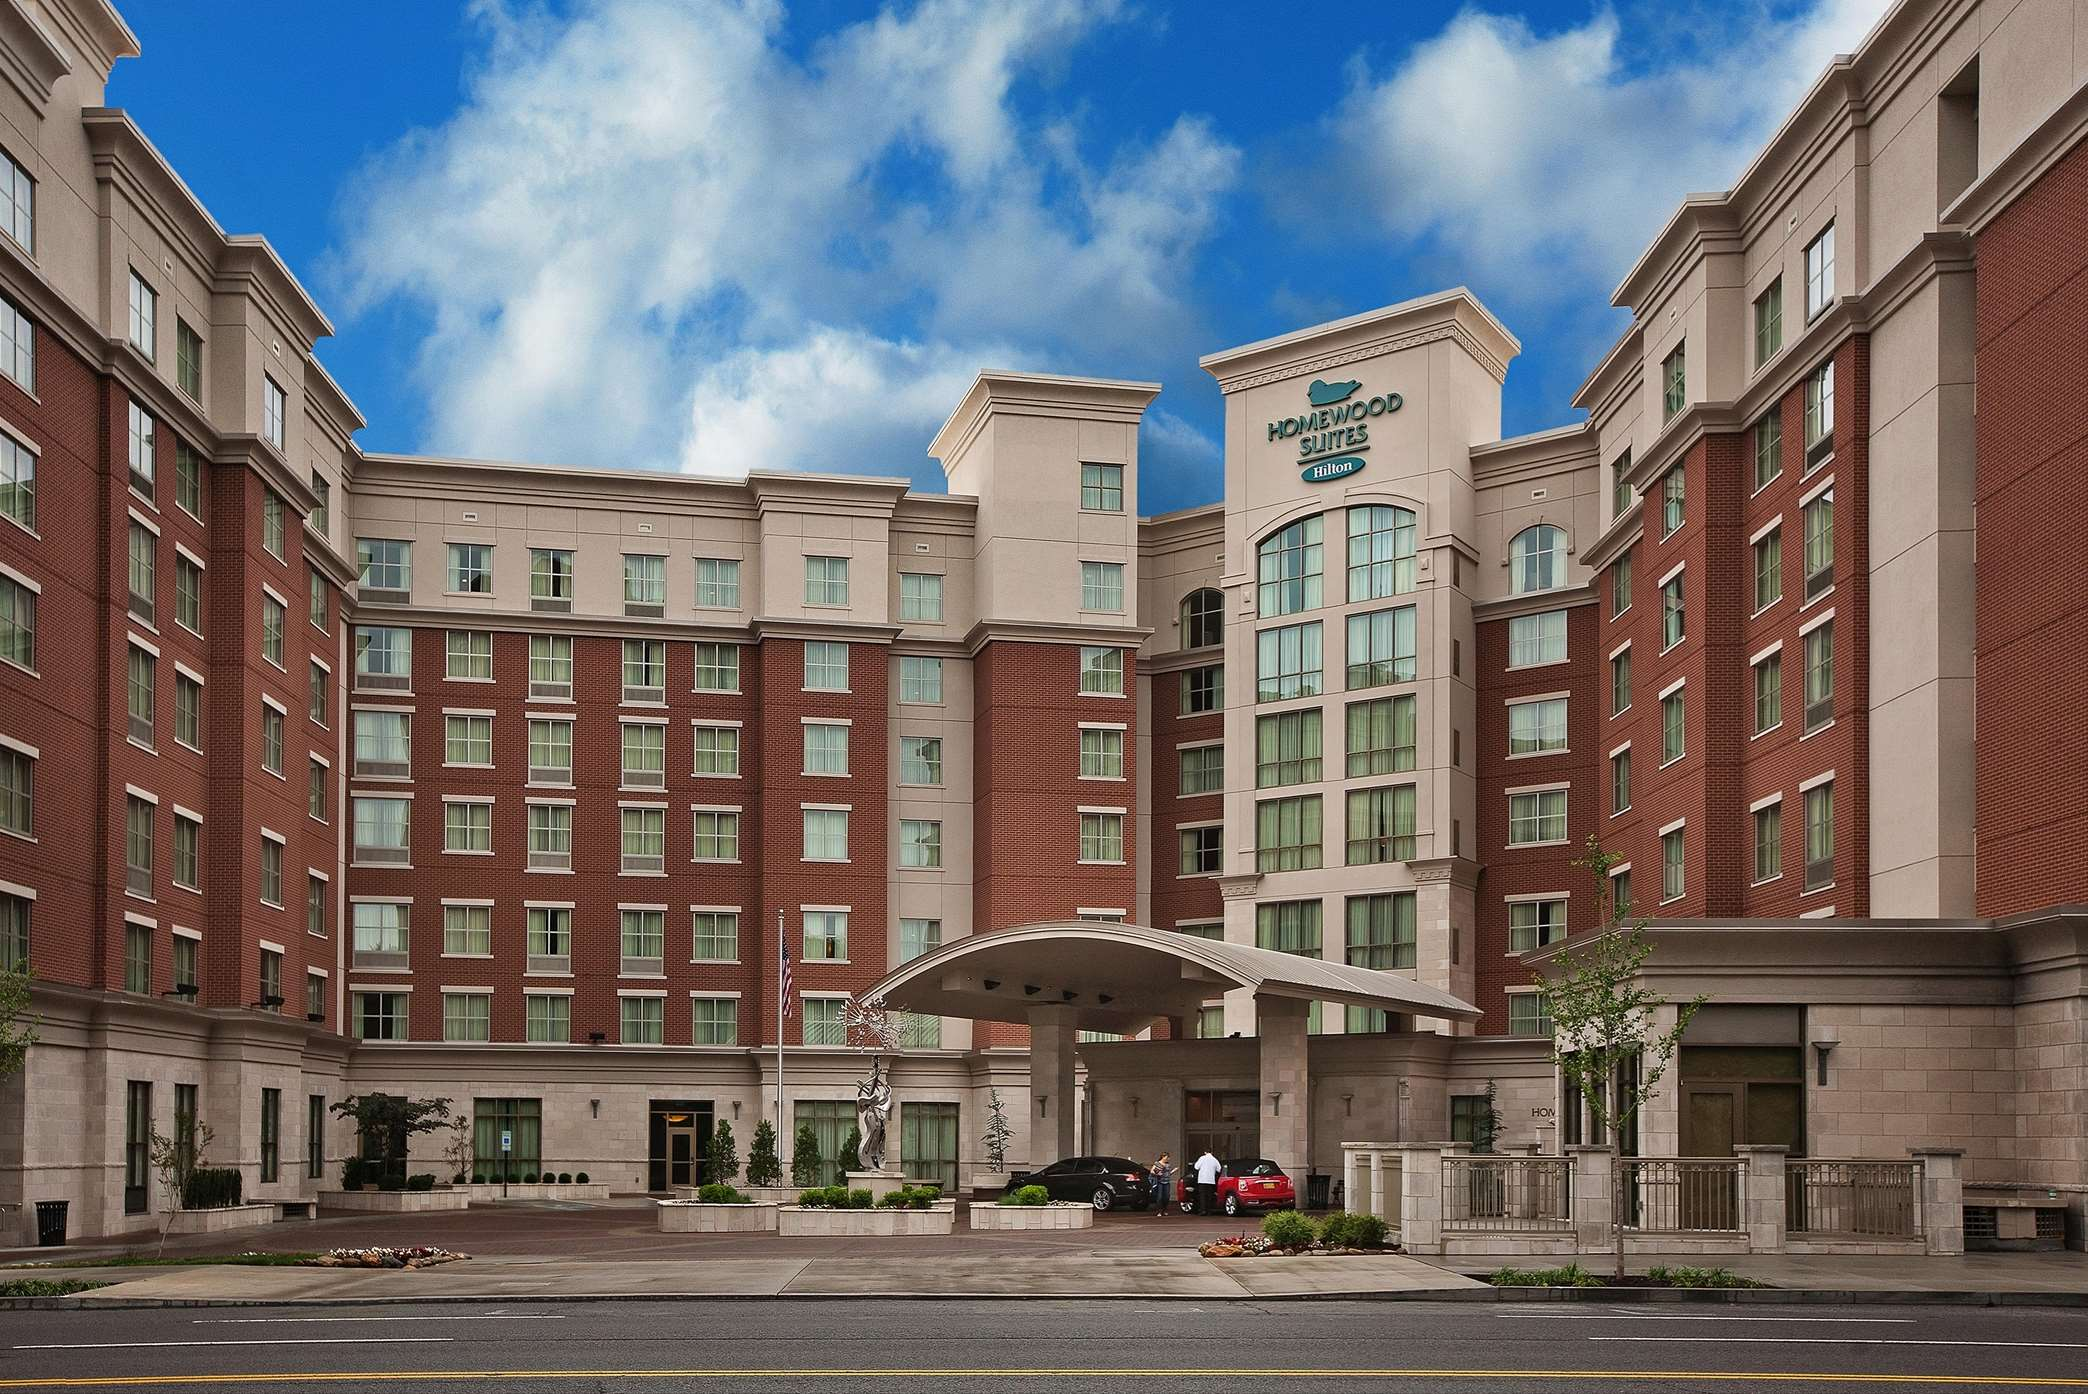 Homewood Suites by Hilton Nashville Vanderbilt, TN